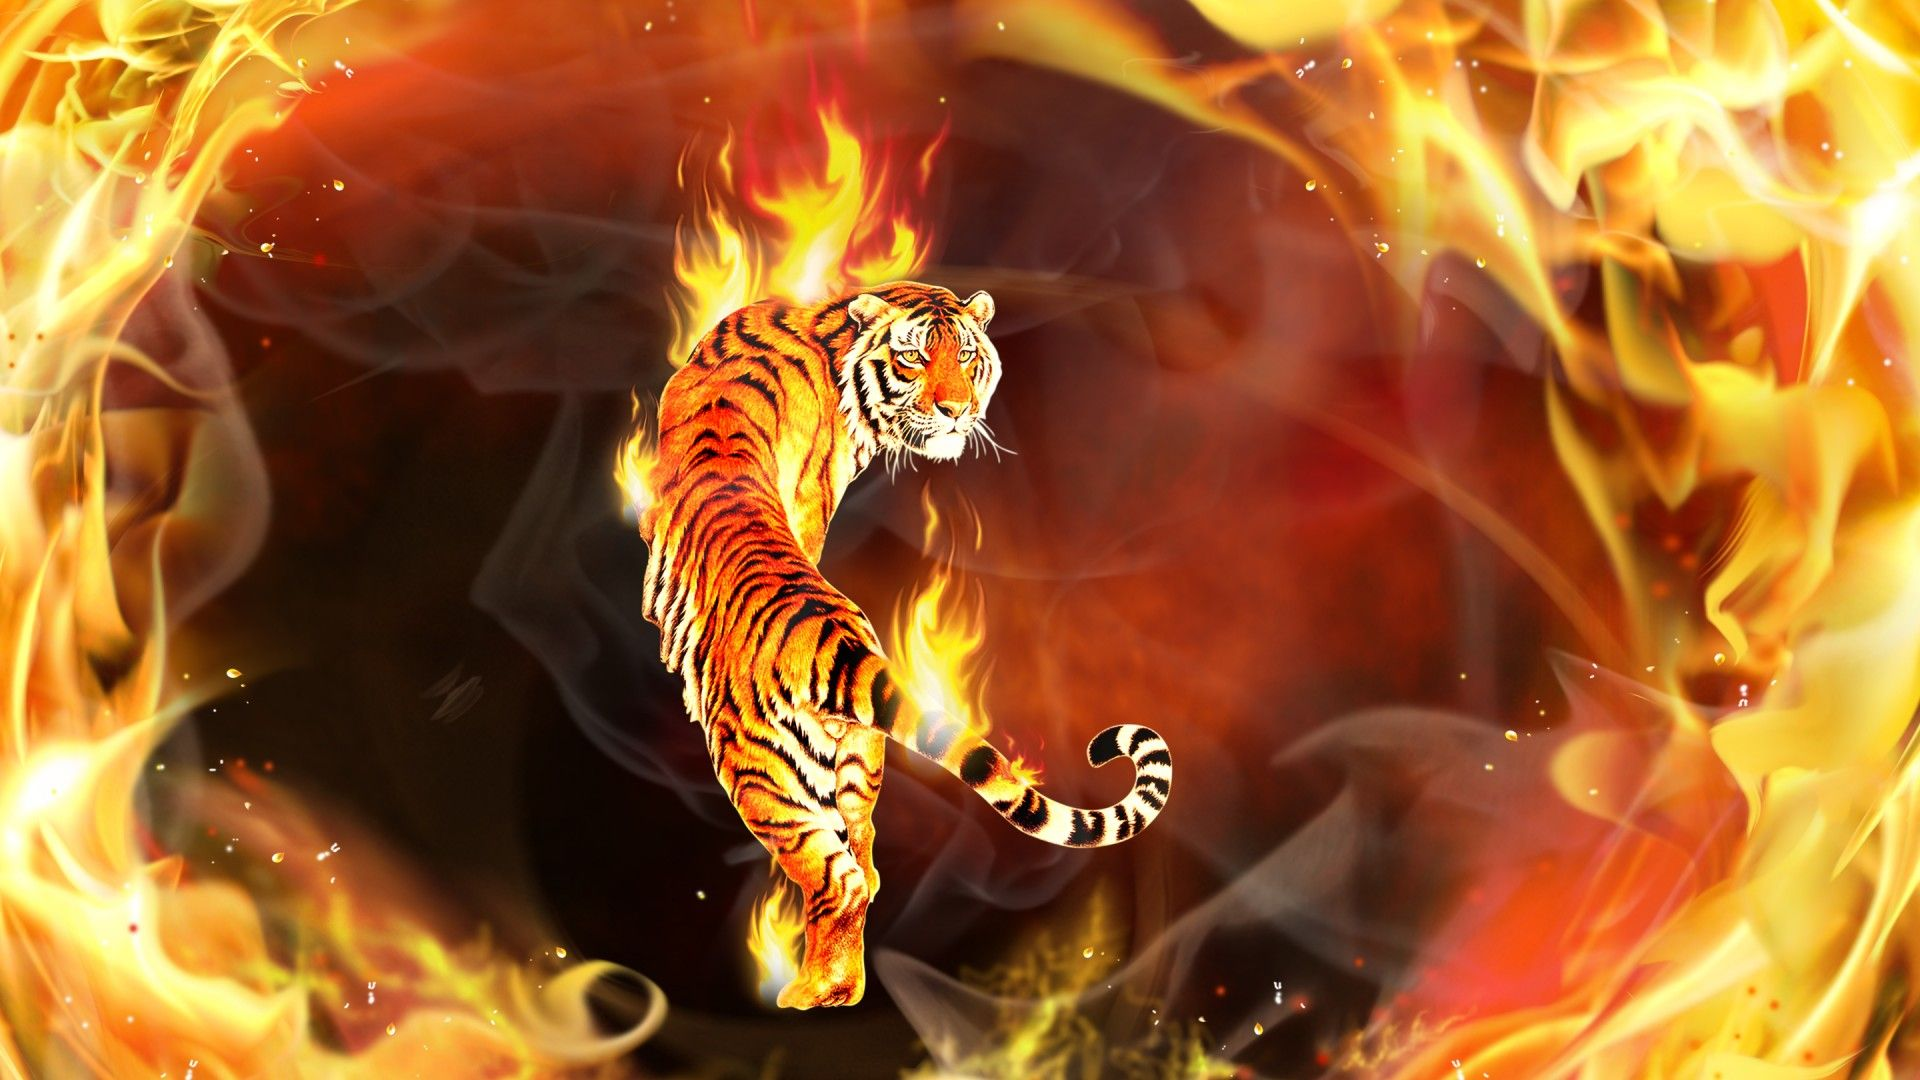 Fire and ice fractal abstract wallpaper hd wallpapers - Images About Wallpaper Screensaver On Pinterest Abstract 1920 1080 Tiger Wallpapers Free 56 Wallpapers